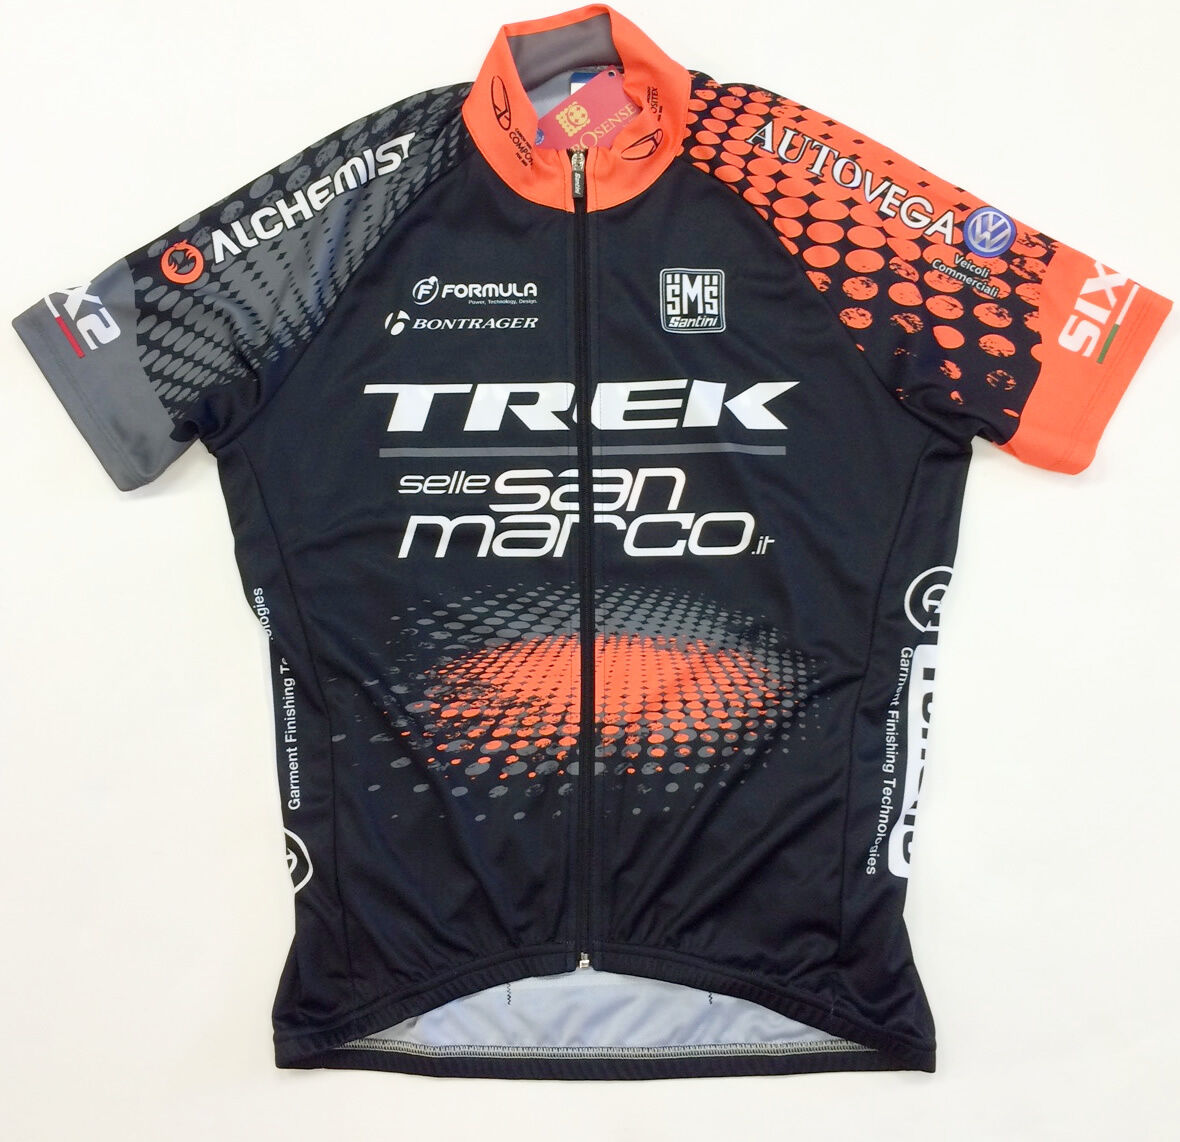 2016 Trek MTB Team Team MTB CYCLING JERSEY Made in  by Santini 3f665e